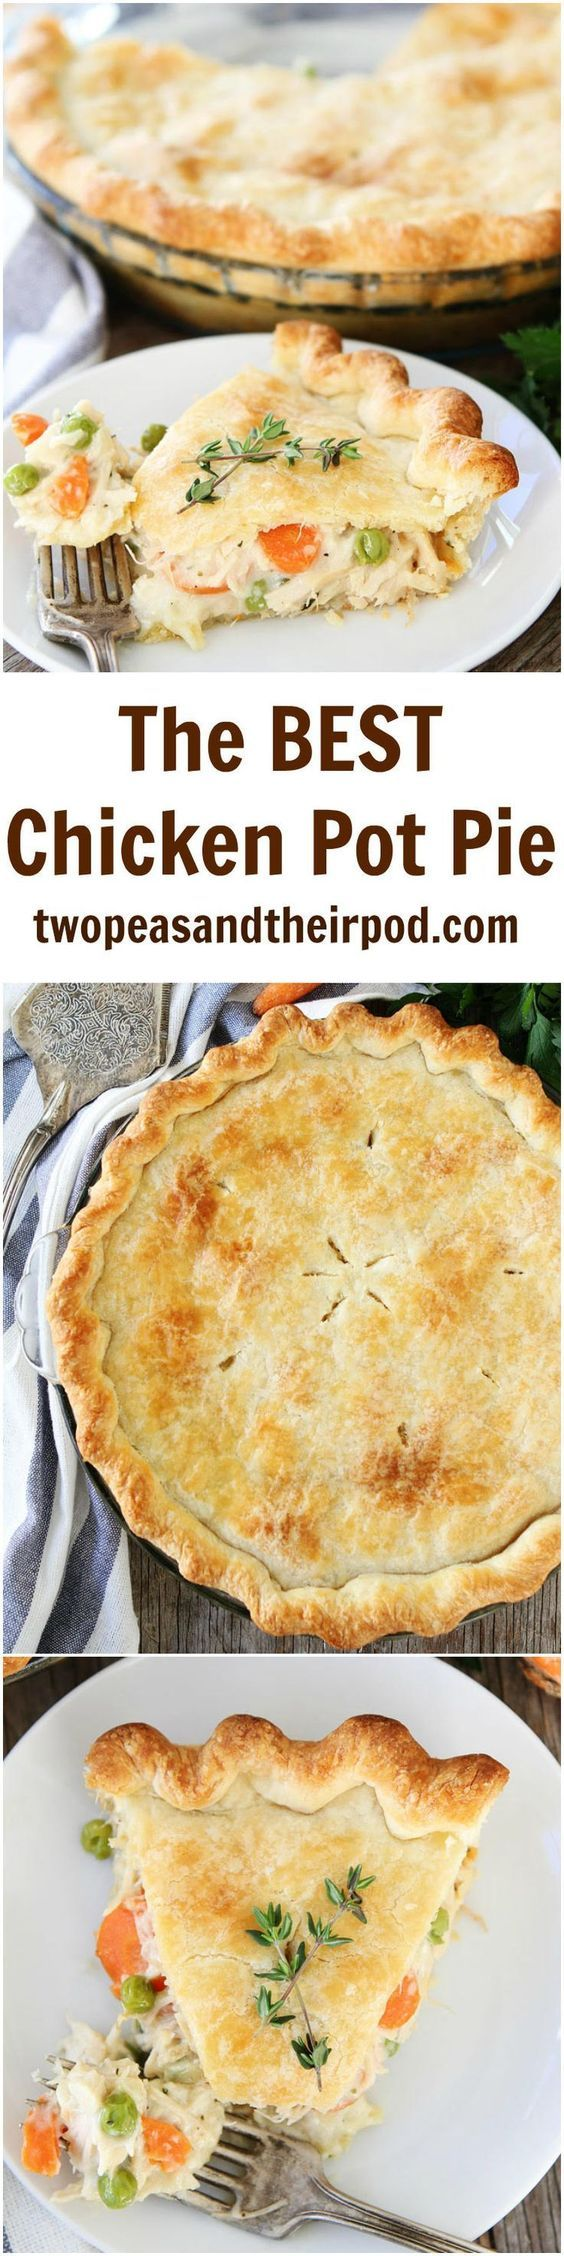 The BEST Chicken Pot Pie Recipe on http://twopeasandtheirpod.com This comforting chicken pot pie is easy to make and it freezes well too! It is a family favorite meal!